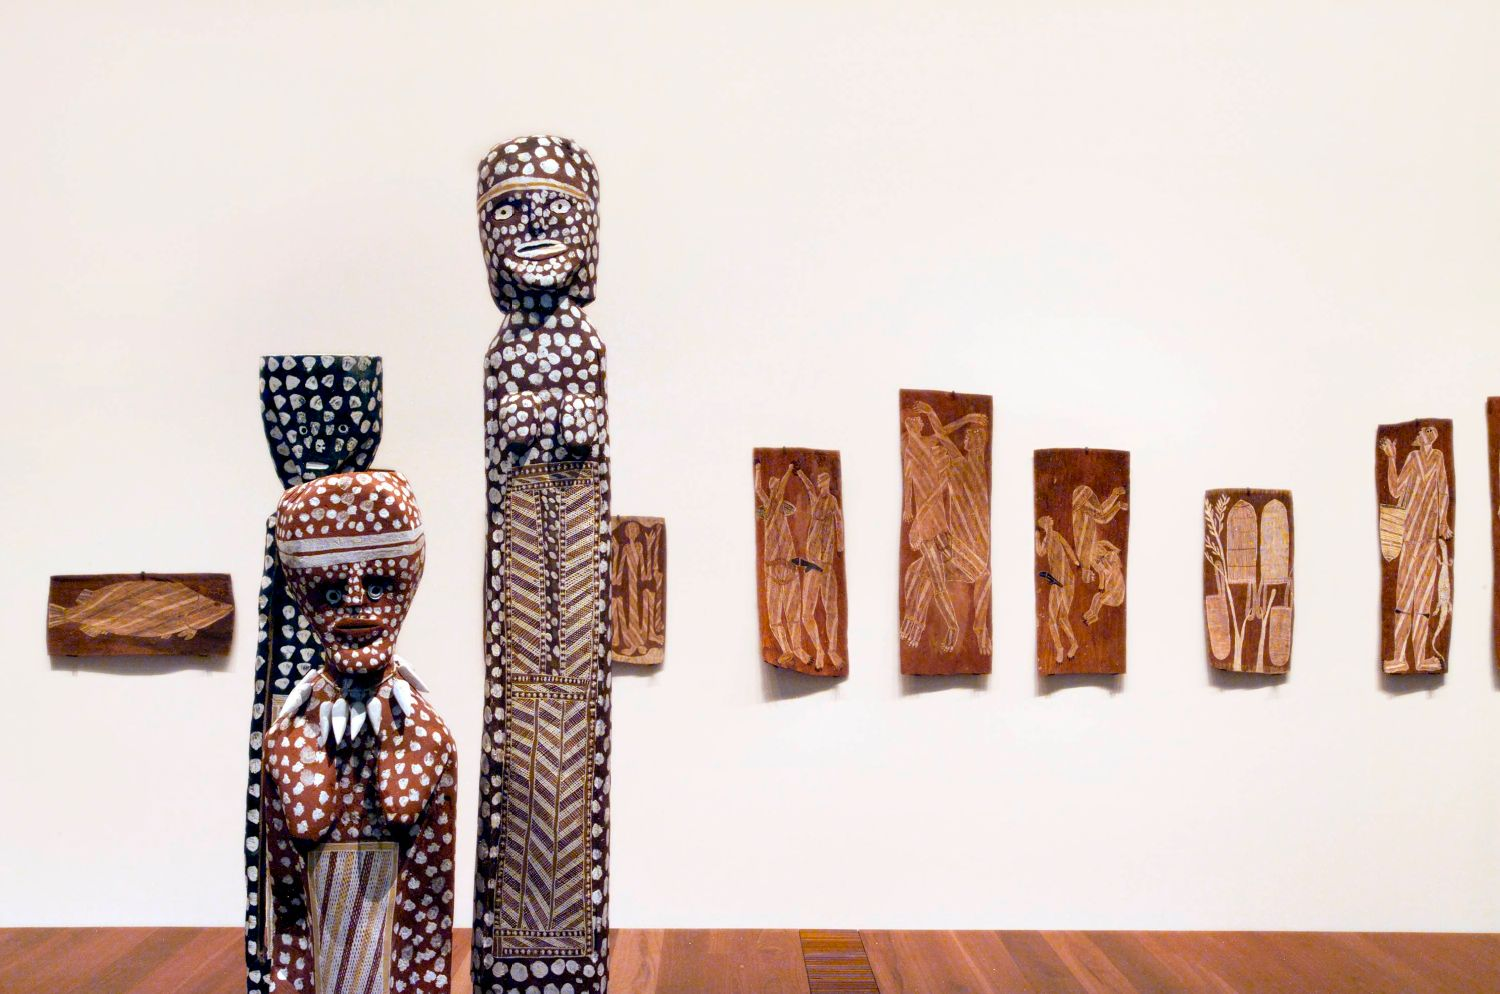 Precious Artwork at National Gallery of Victoria protected by Testo